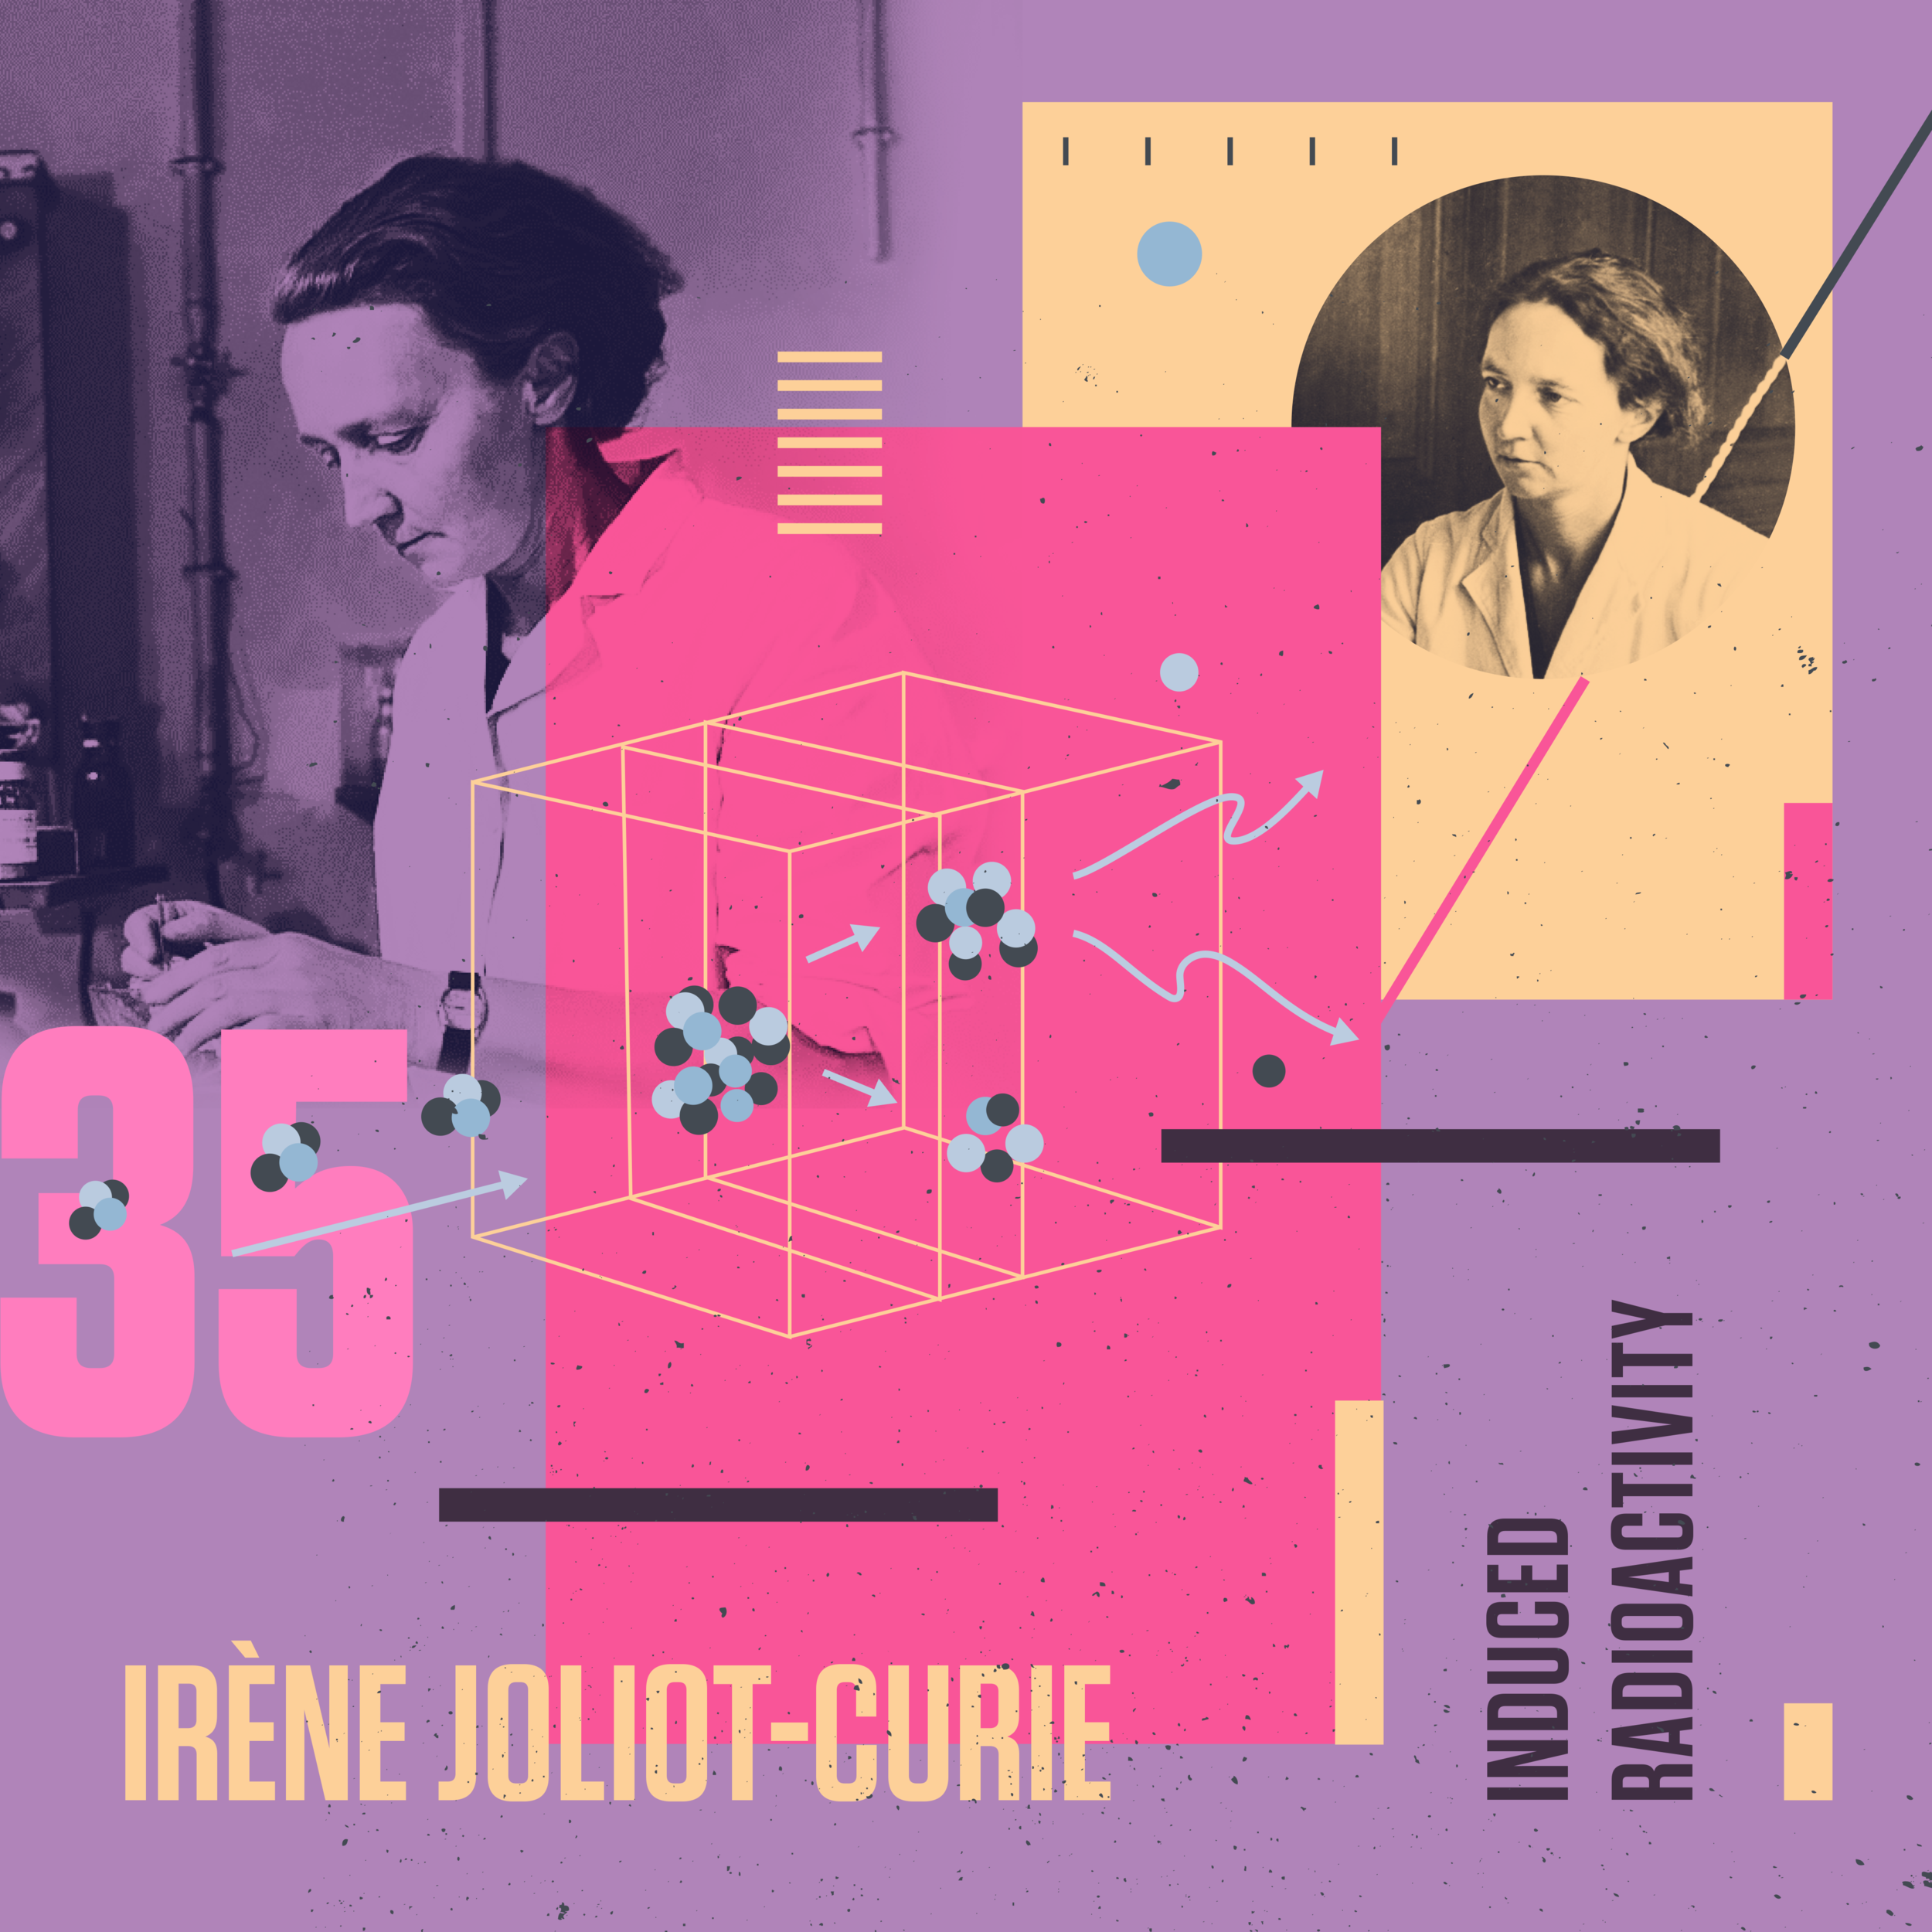 irene_joliot_curie.png